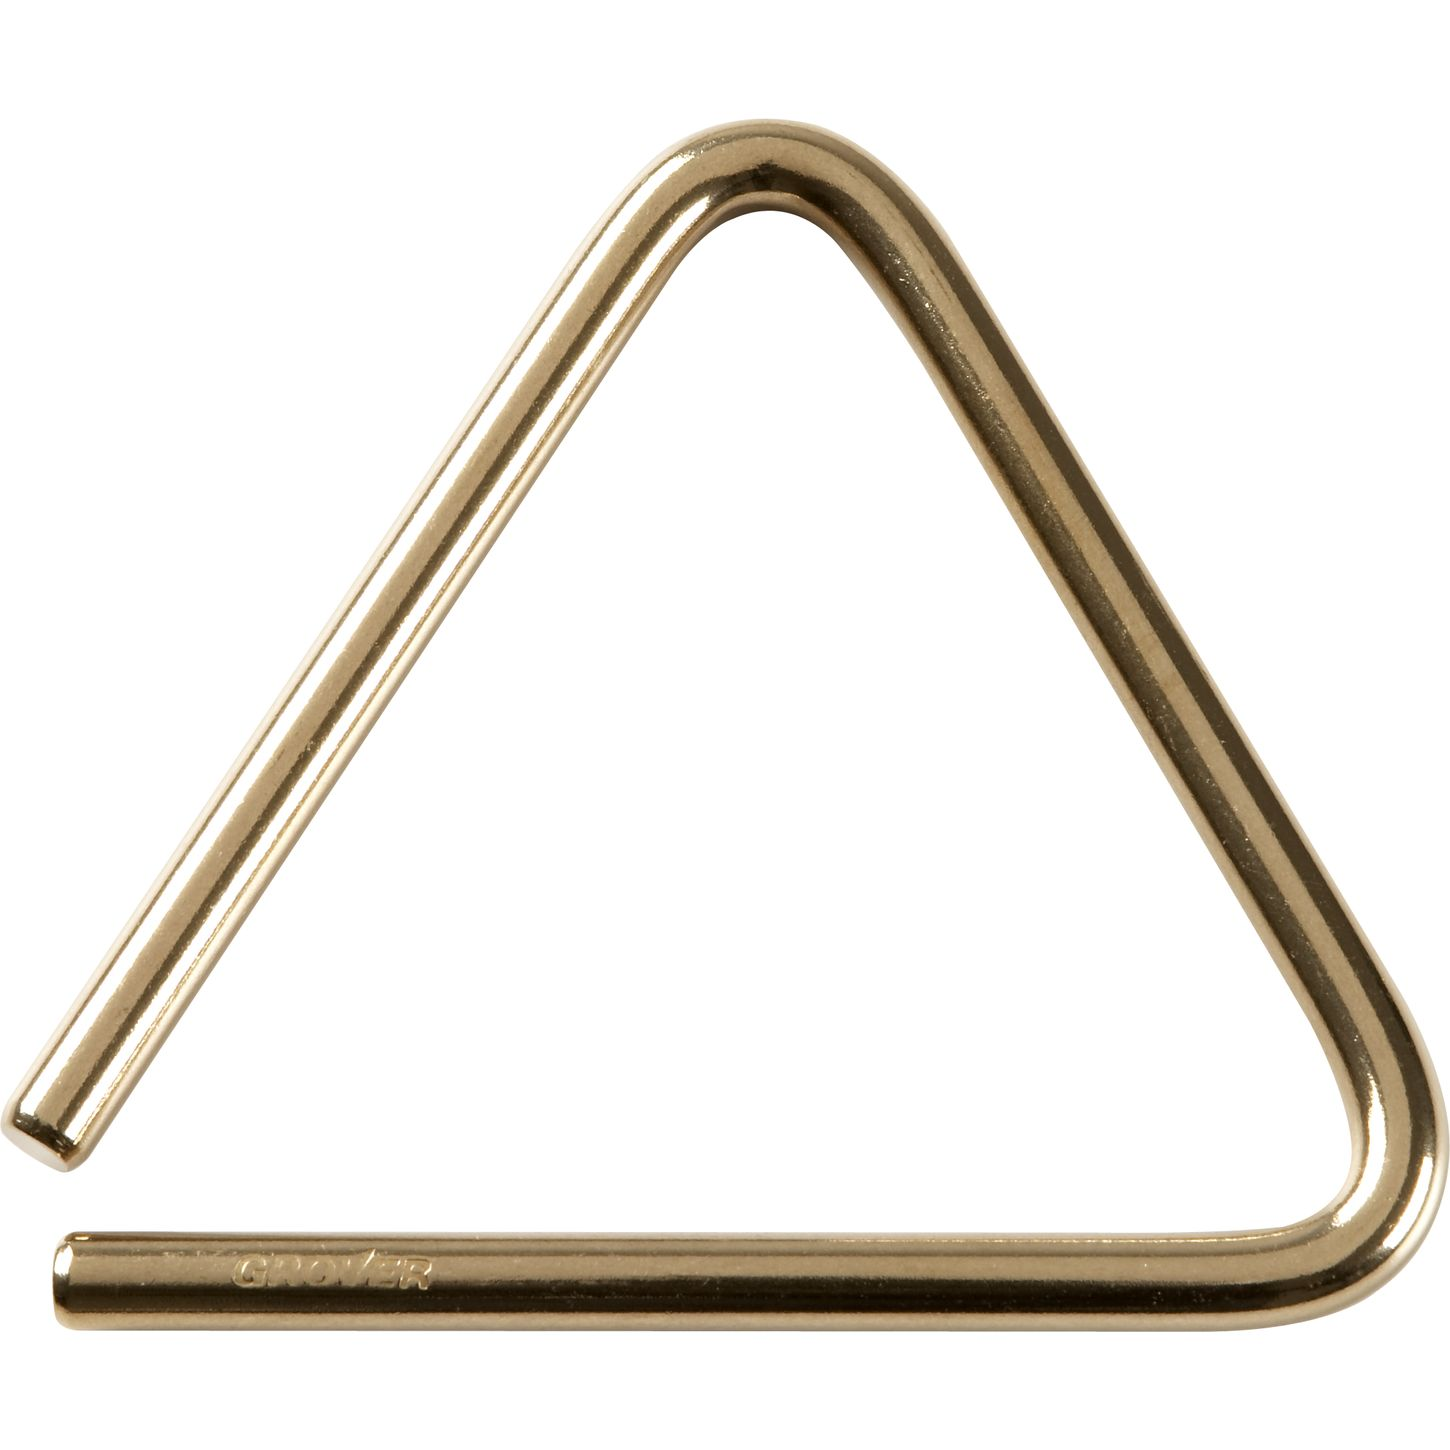 "Grover Pro 9"" Bronze Symphonic Triangle"